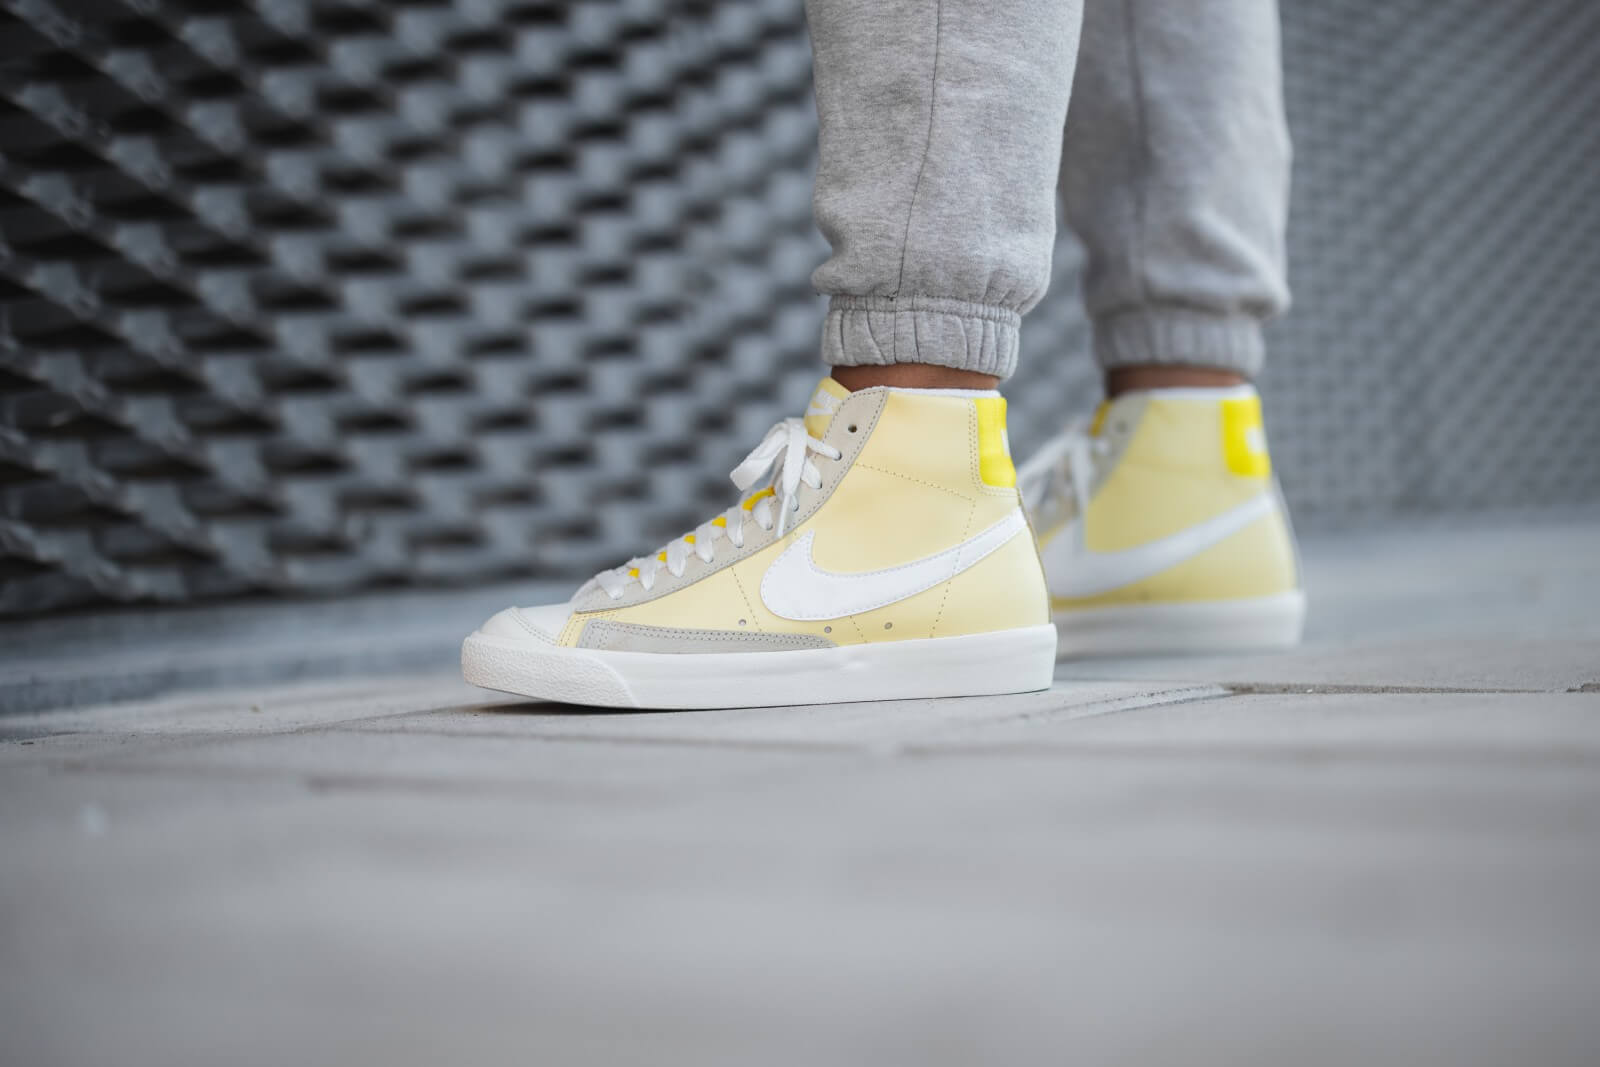 primer ministro Se infla extinción  Nike Women's Blazer Mid '77 Bicycle Yellow/White-Opti Yellow - CZ0363-700